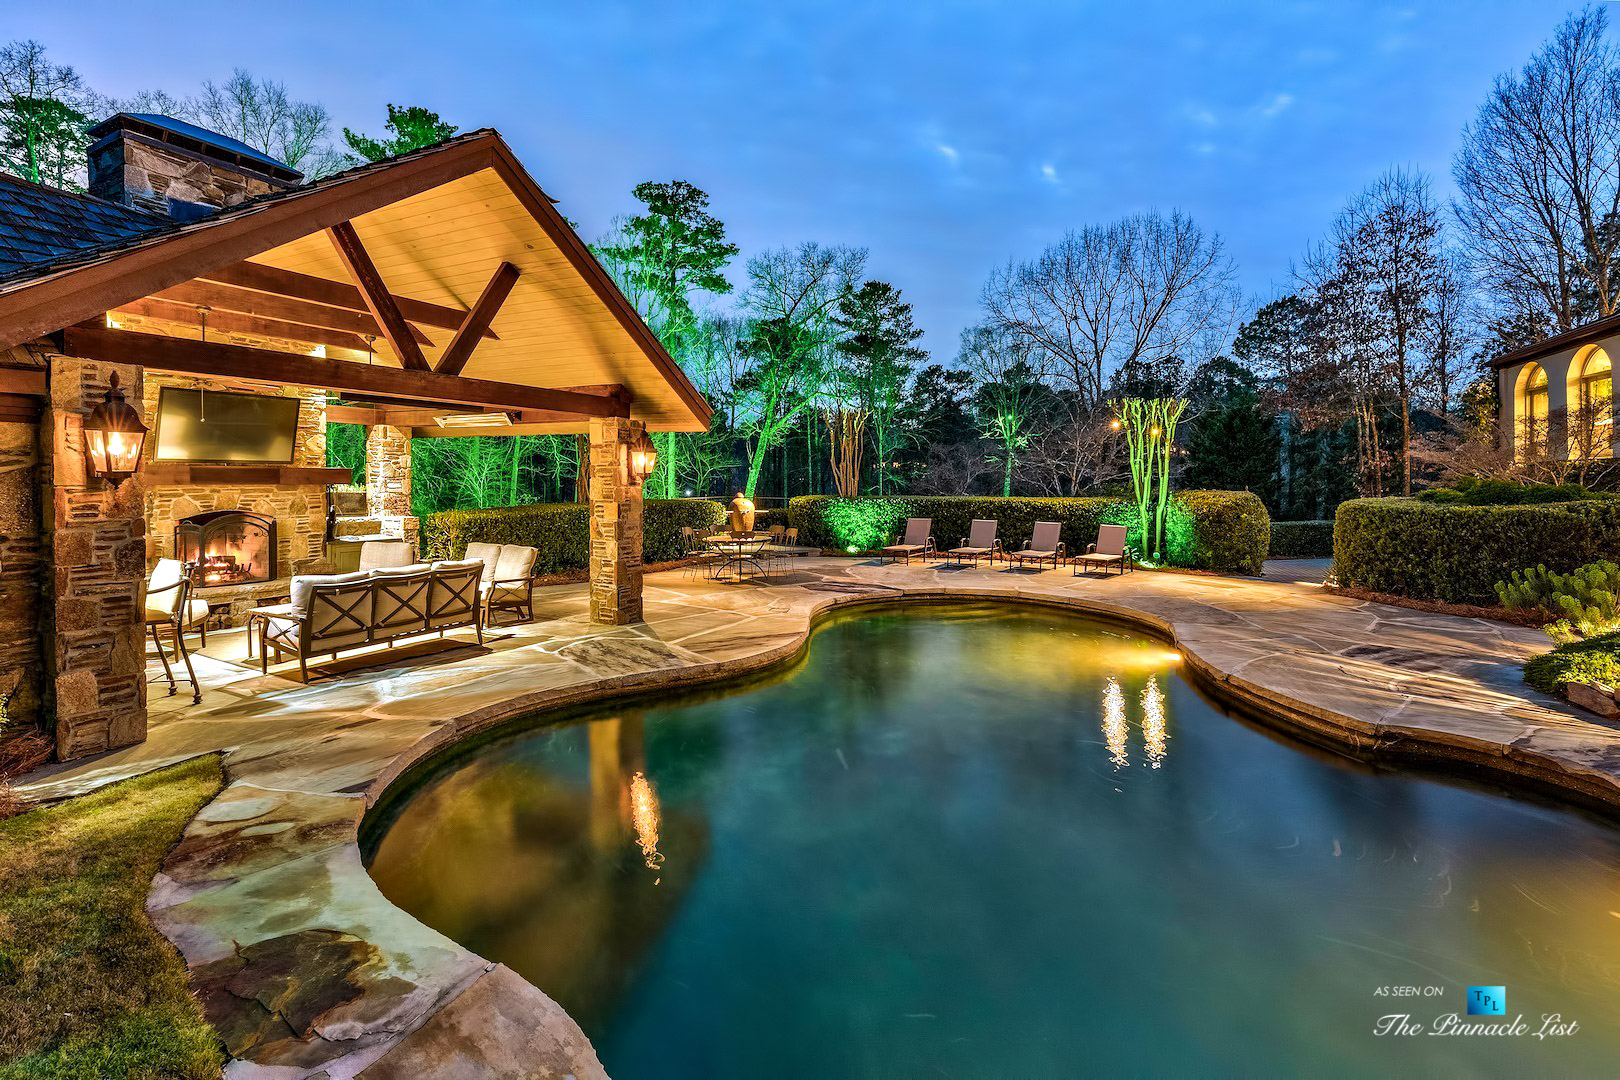 75 Finch Forest Trail, Atlanta, GA, USA - Evening Backyard Pool View - Luxury Real Estate - Sandy Springs Home